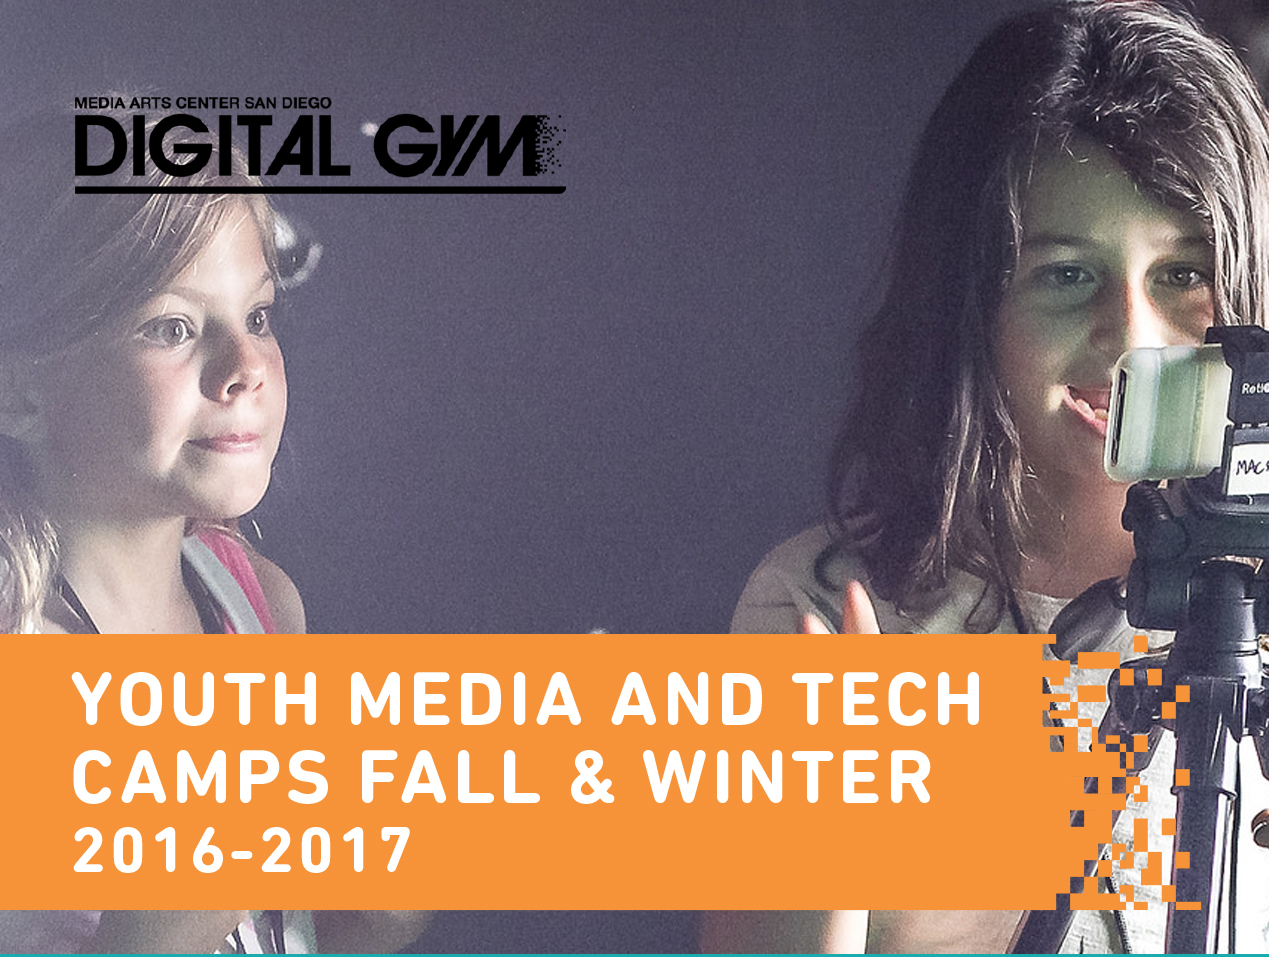 Fall Youth Media & Tech Camps (November 21-23)